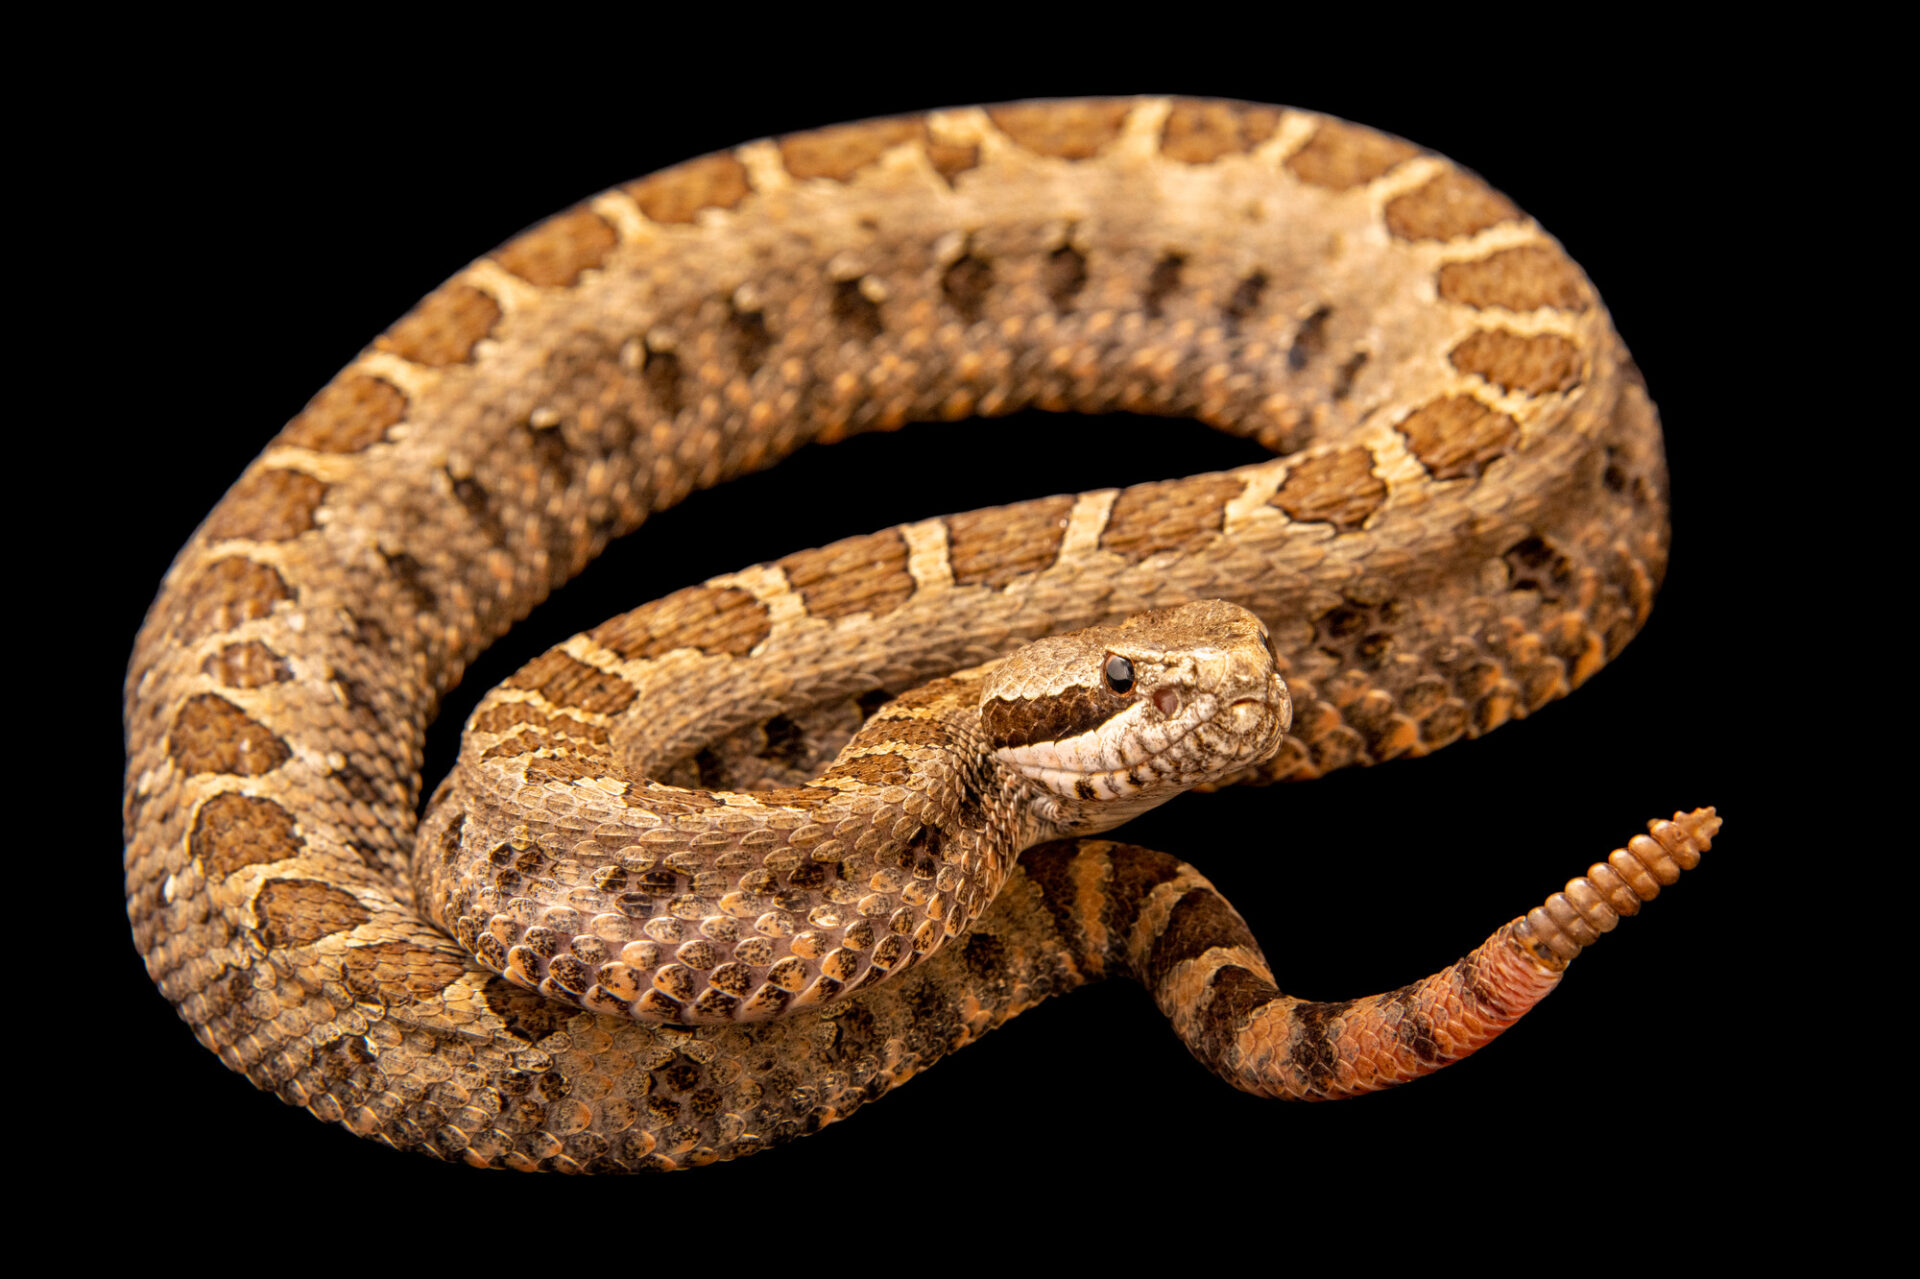 Photo: A Tlaloc's rattlesnake (Crotalus tlaloci) from a private collection.